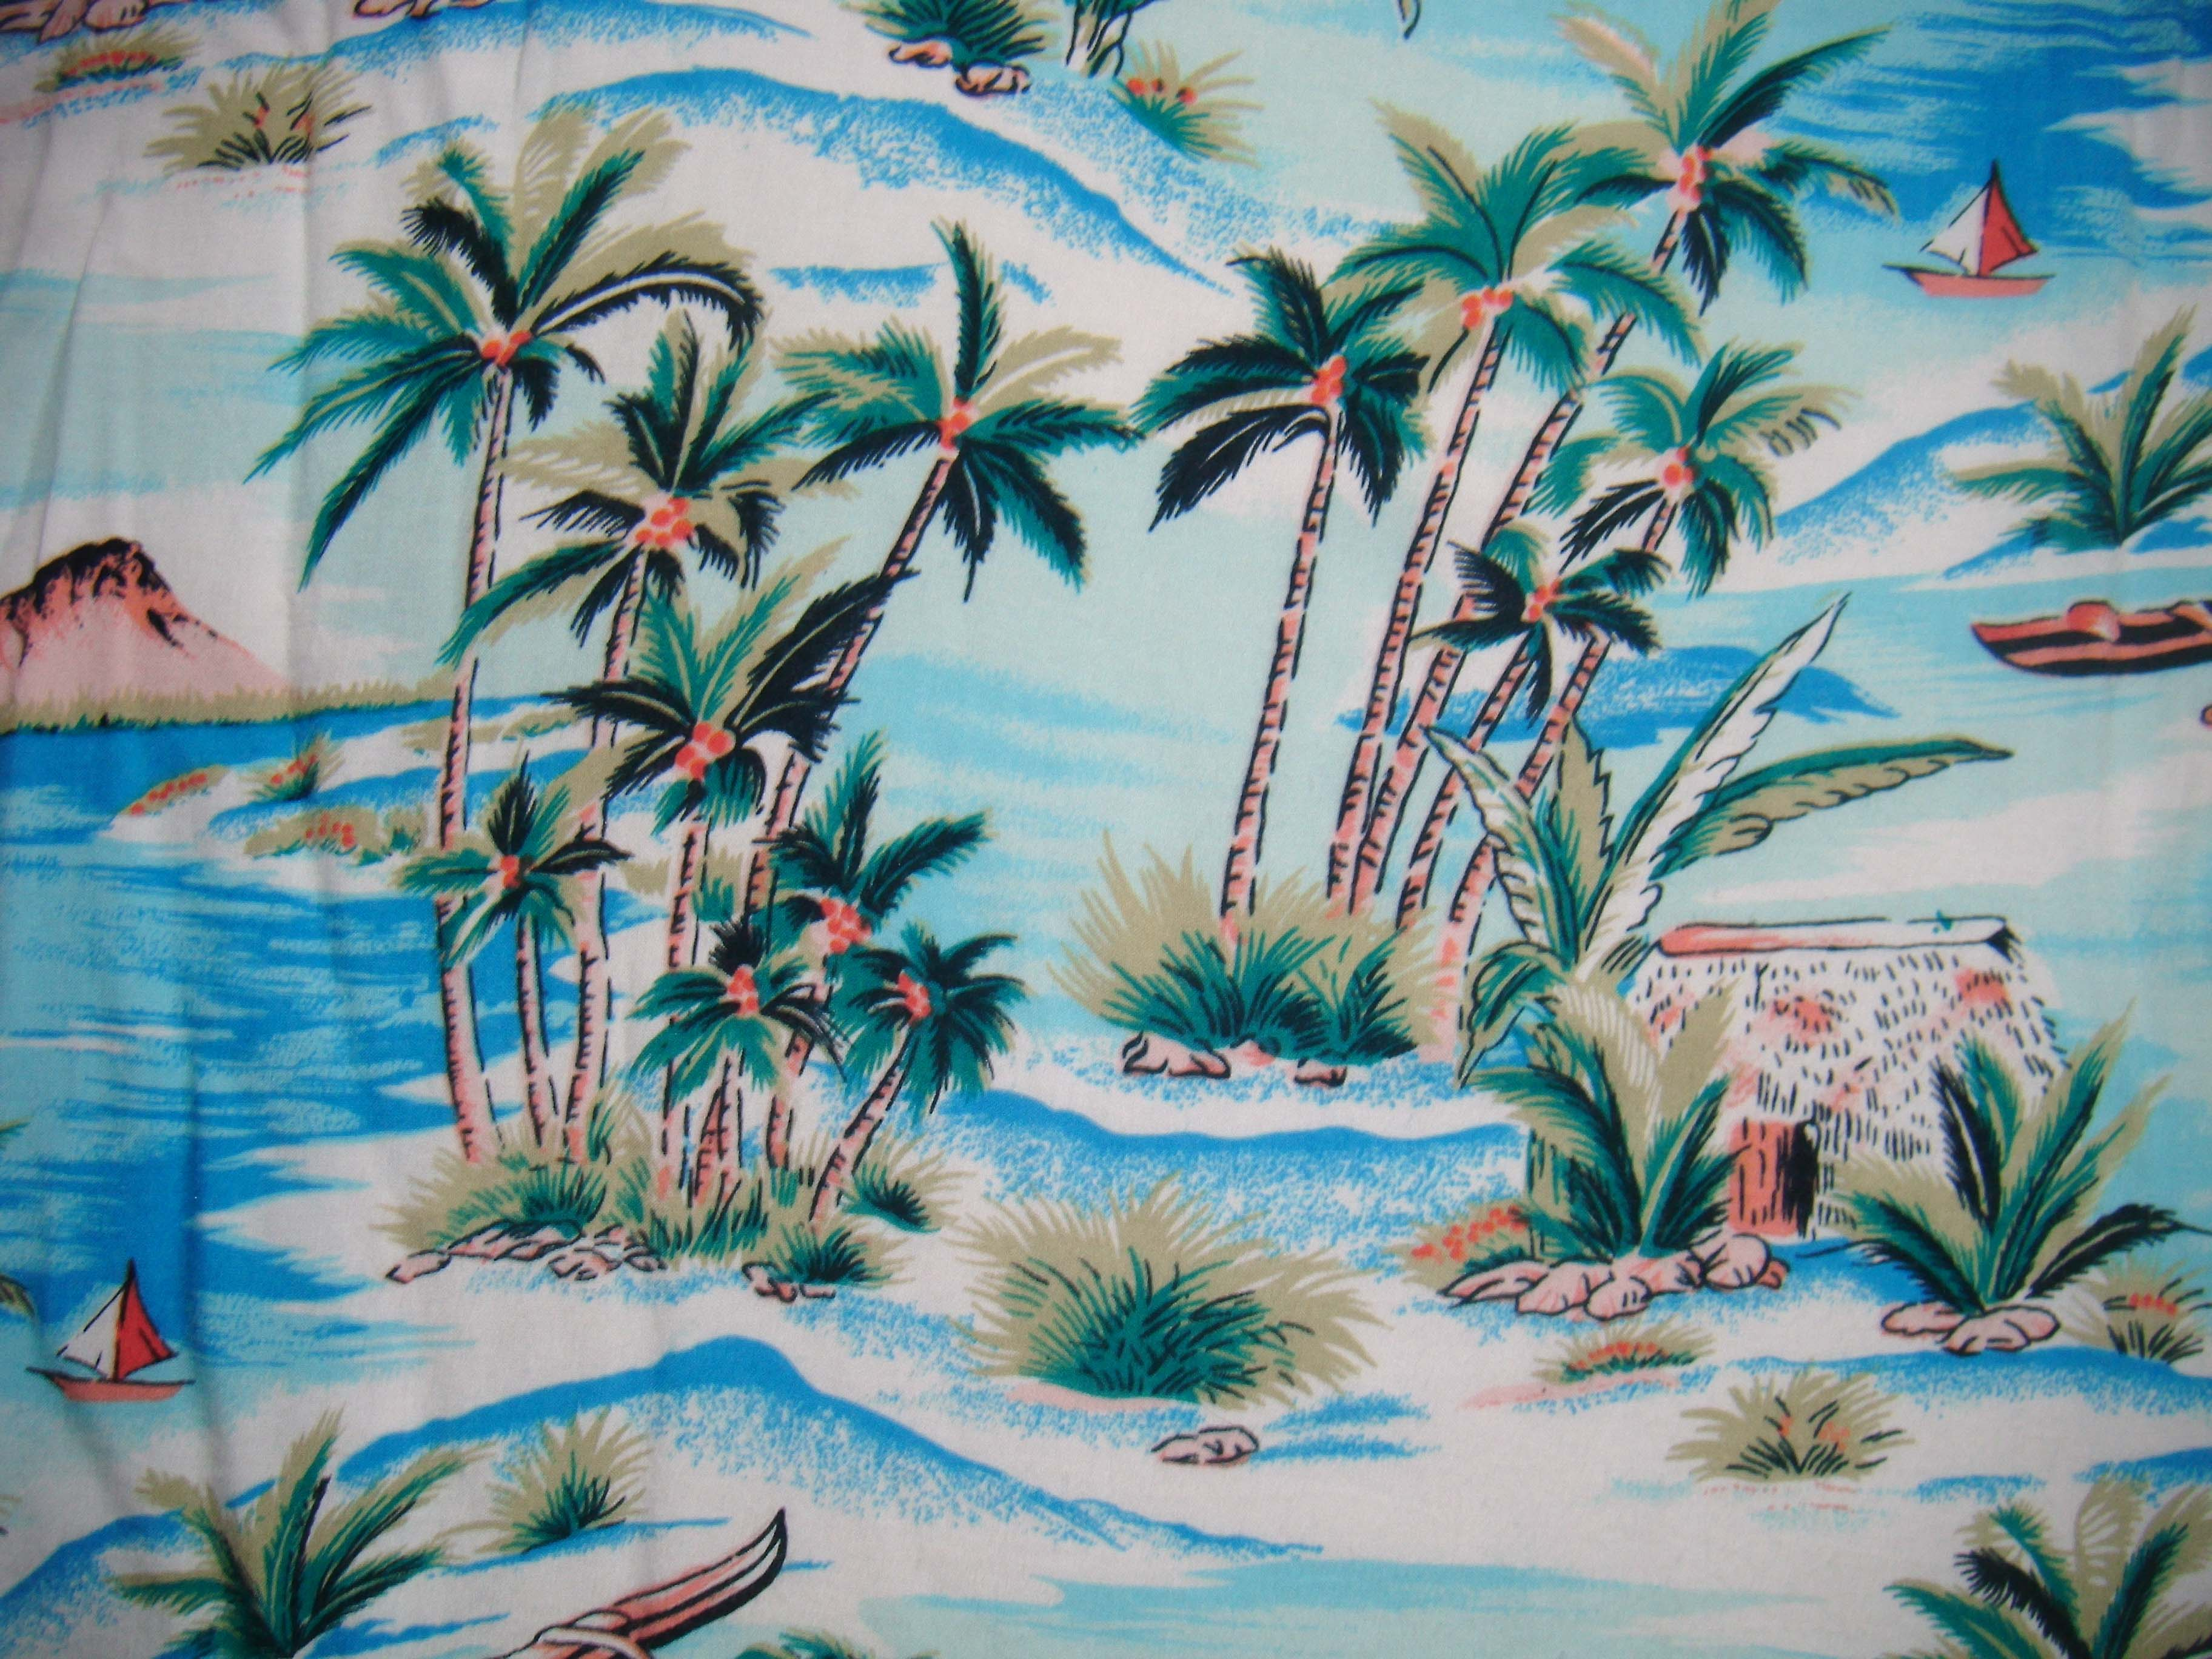 Vintage Hawaiian Wallpaper Flowers Pattern Top Pictures 3648x2736